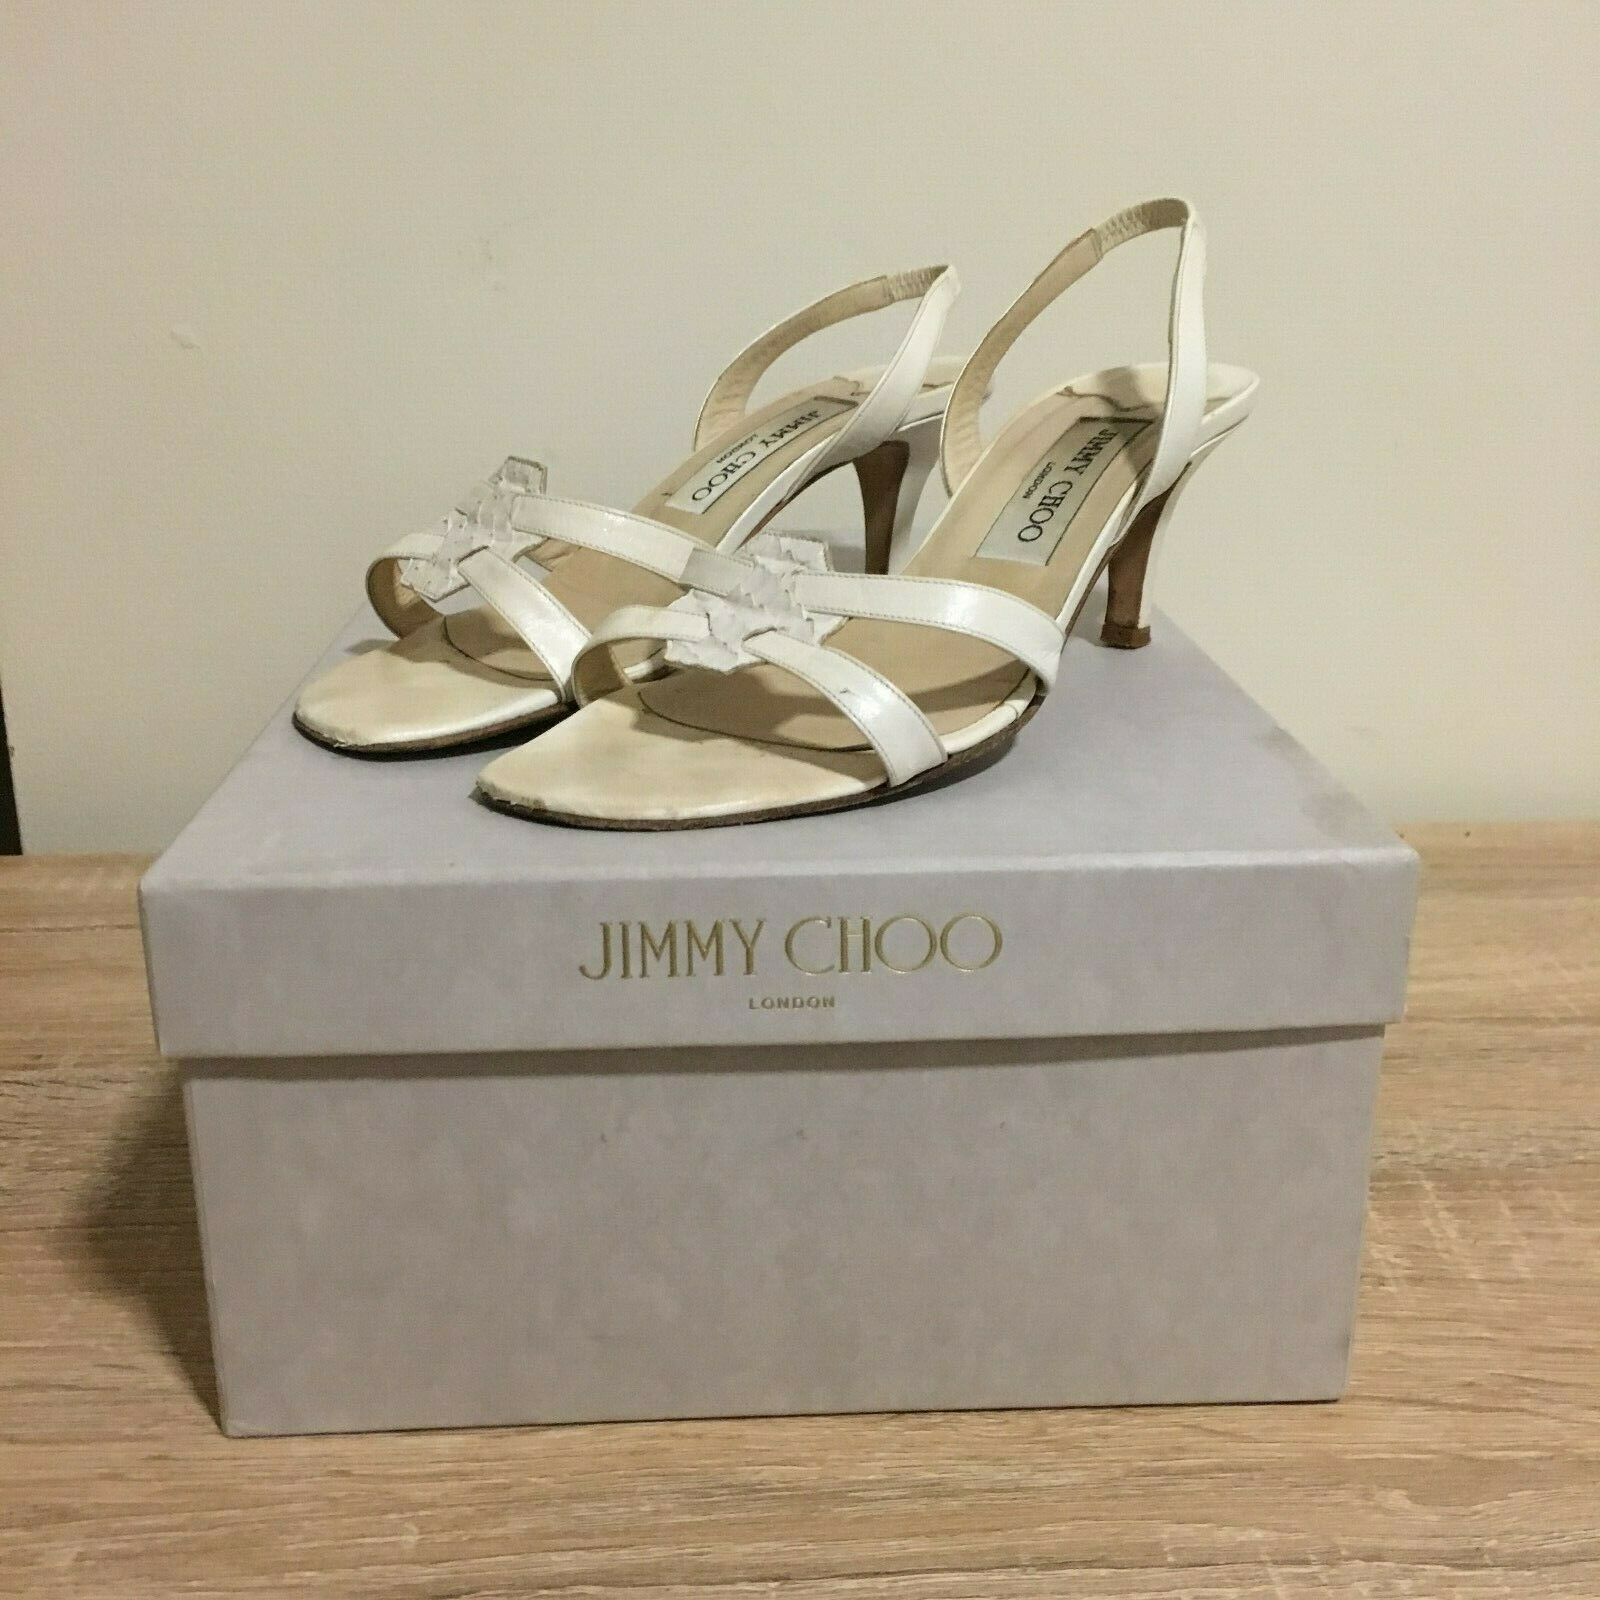 Jimmy Choo White Cream Leather Snake Print Heels shoes Sandals Boots 35 UK 2 3